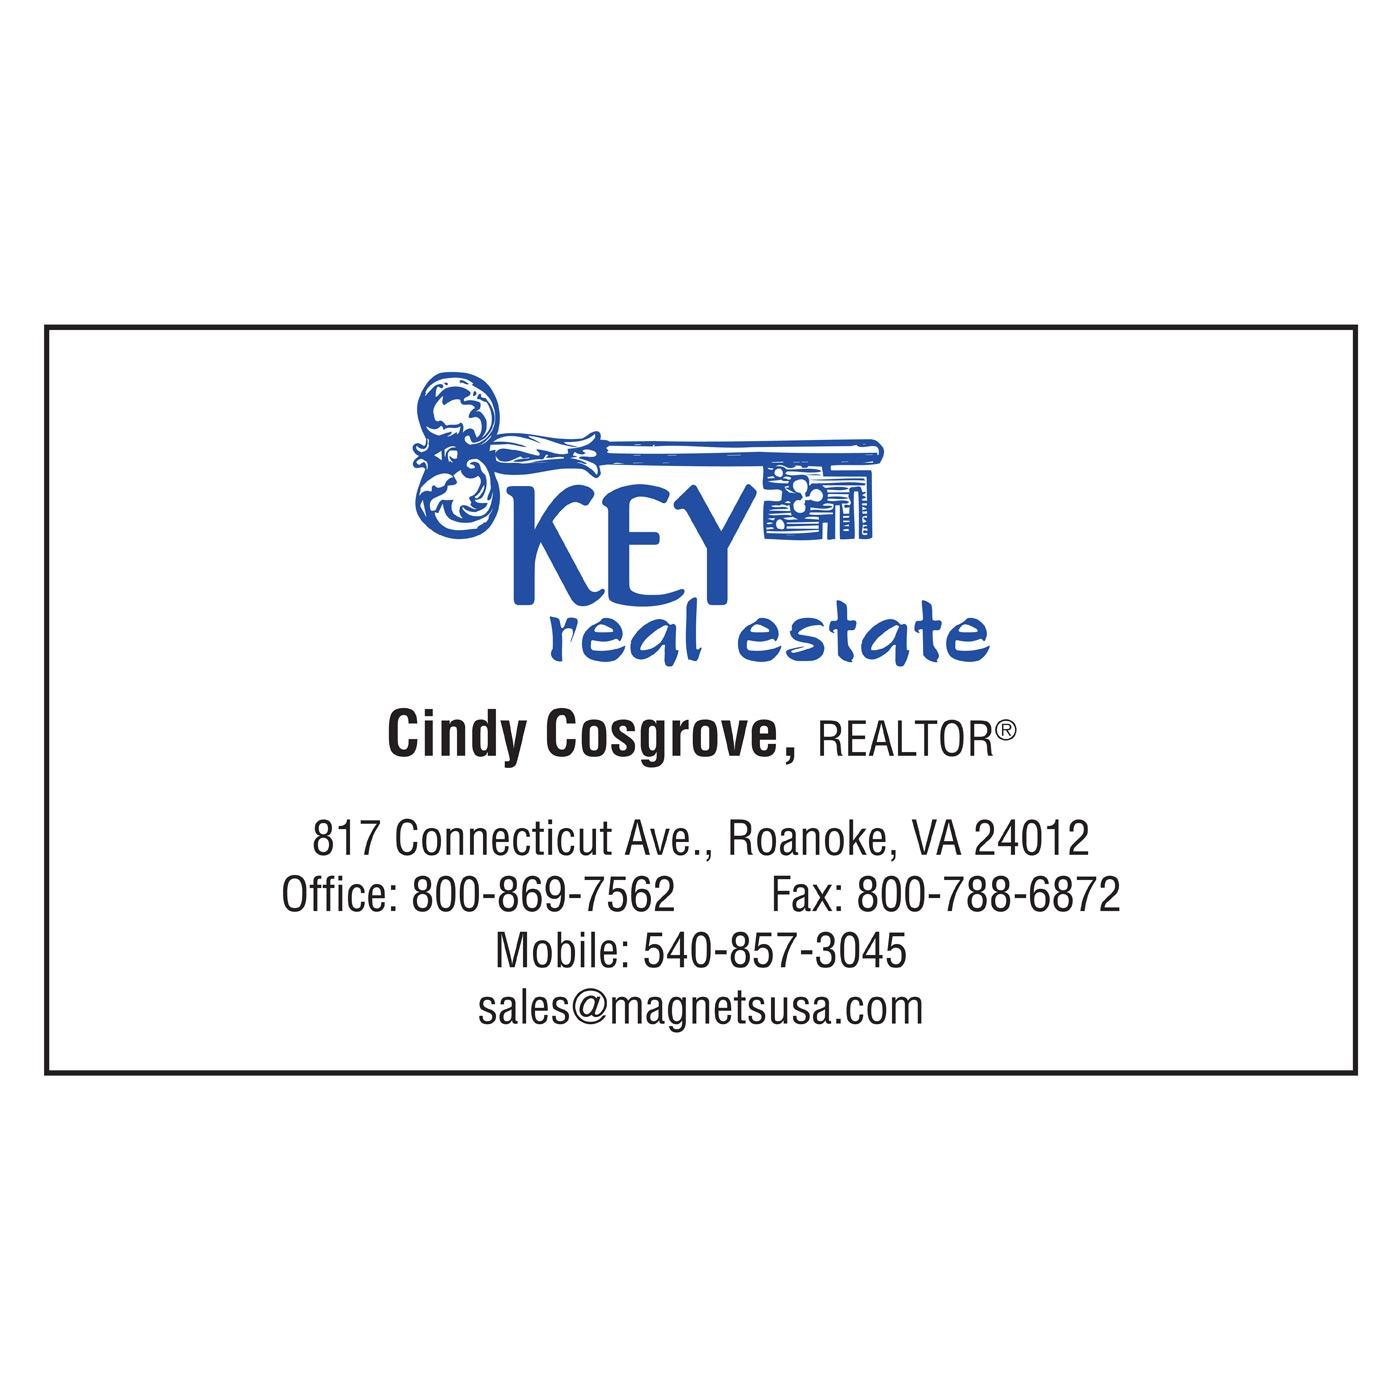 business card with prominent logo